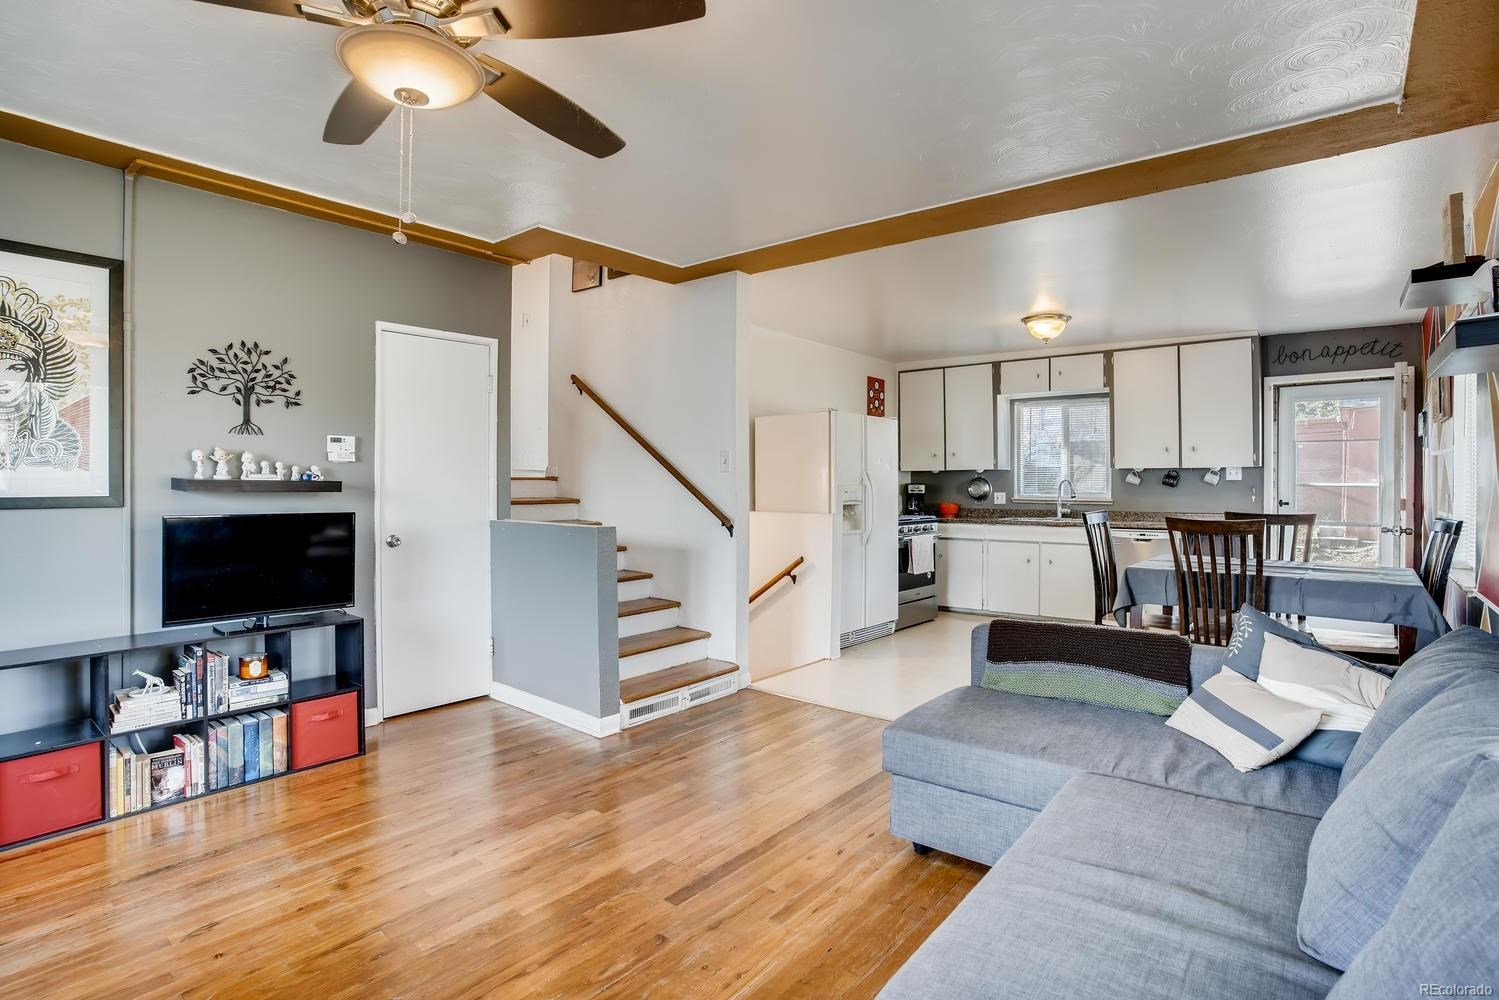 MLS# 3194522 - 9 - 4400 W Gill Place, Denver, CO 80219